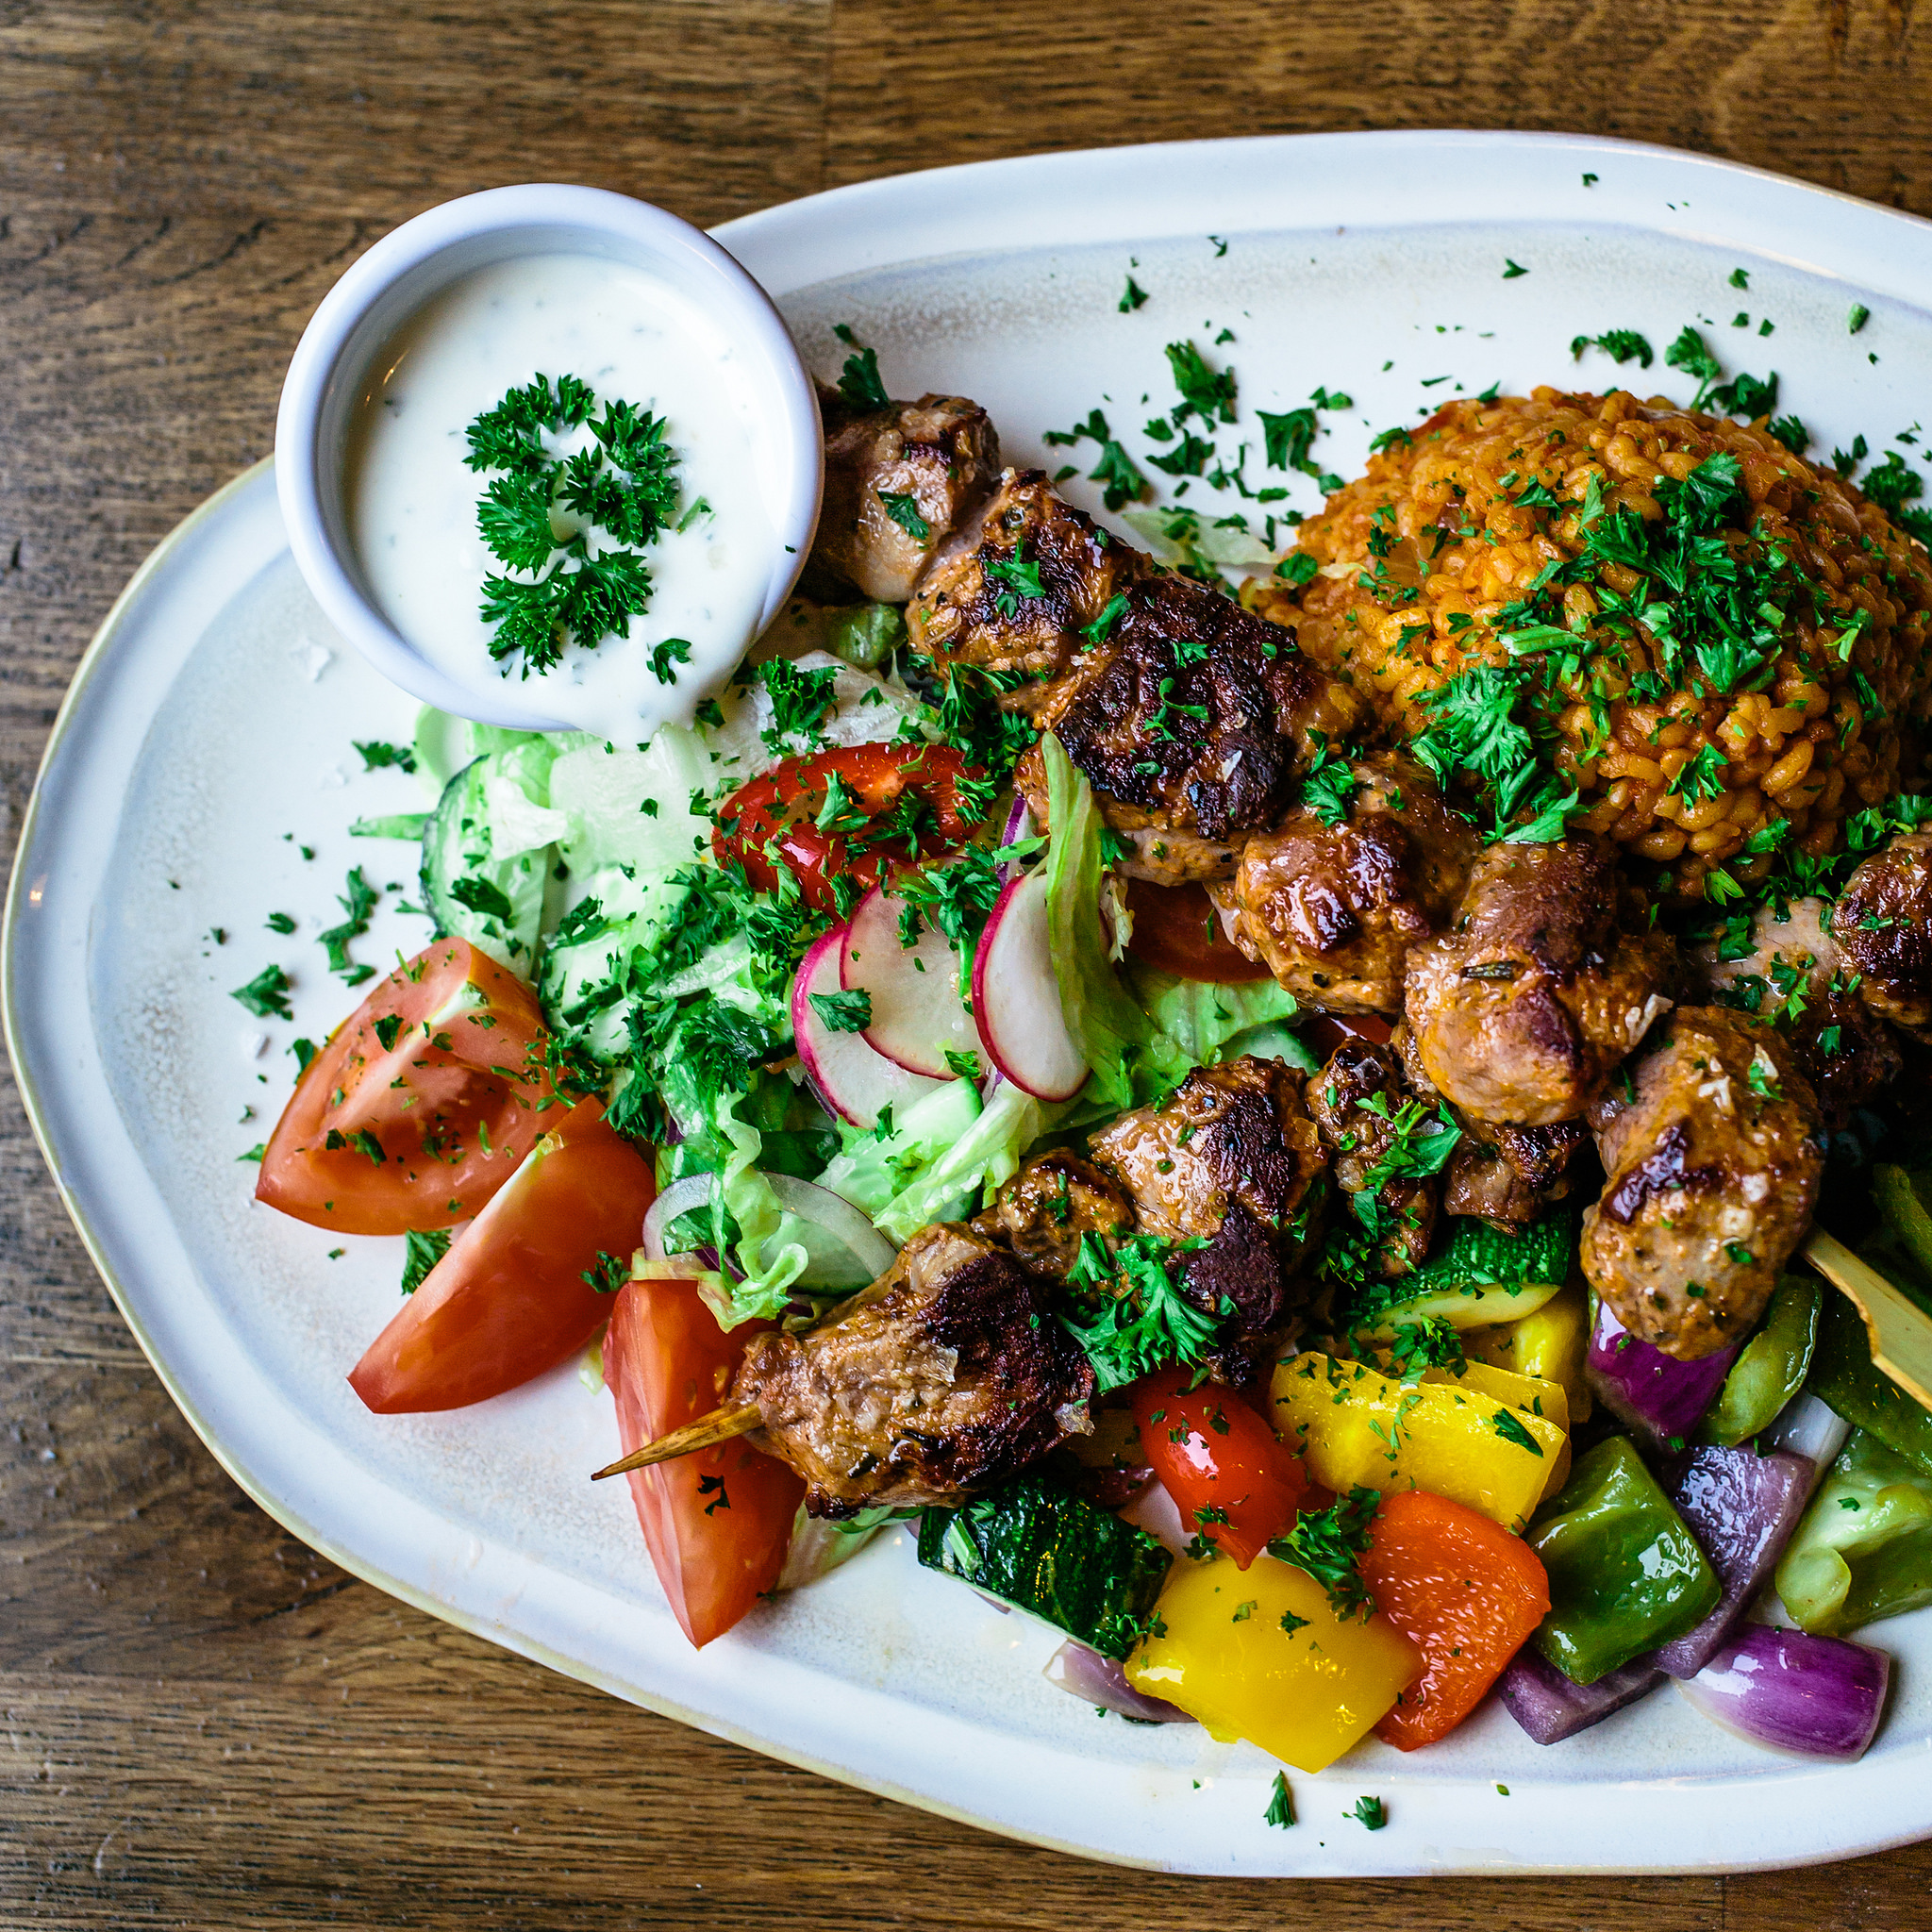 A turkish taste at last the reykjavik grapevine for A taste of turkish cuisine